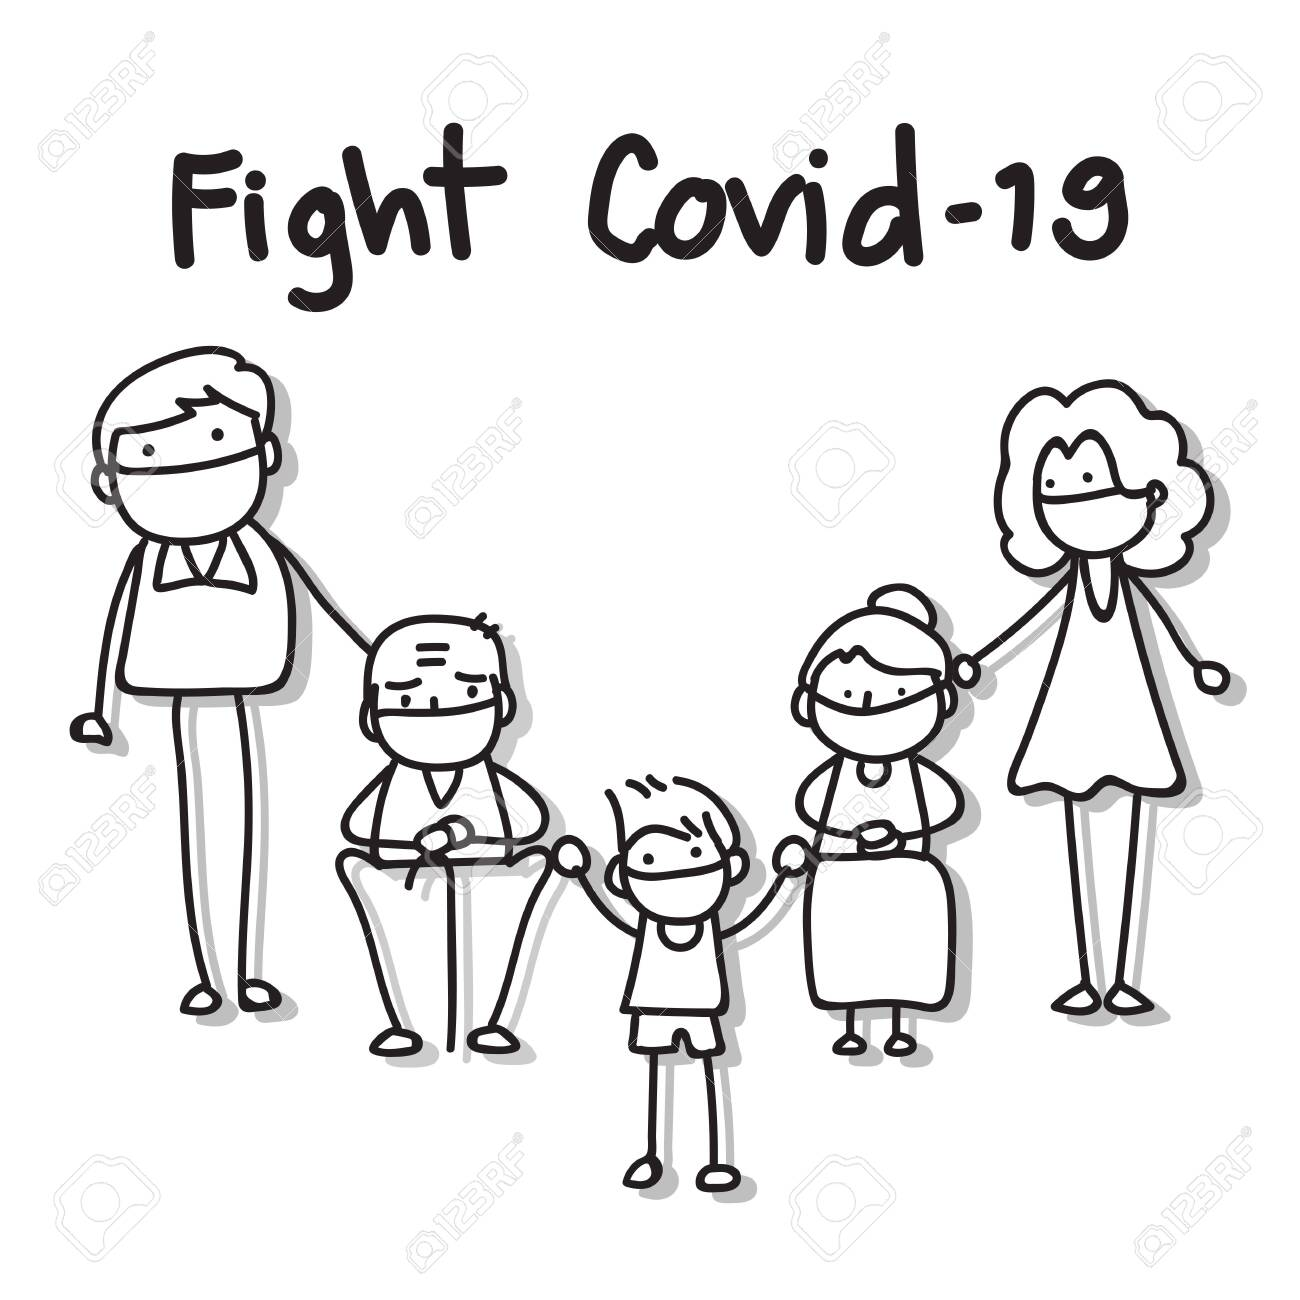 hand drawing cartoon character people in family wear mask protection fight Covid-19. vector illustration eps10. - 142810807